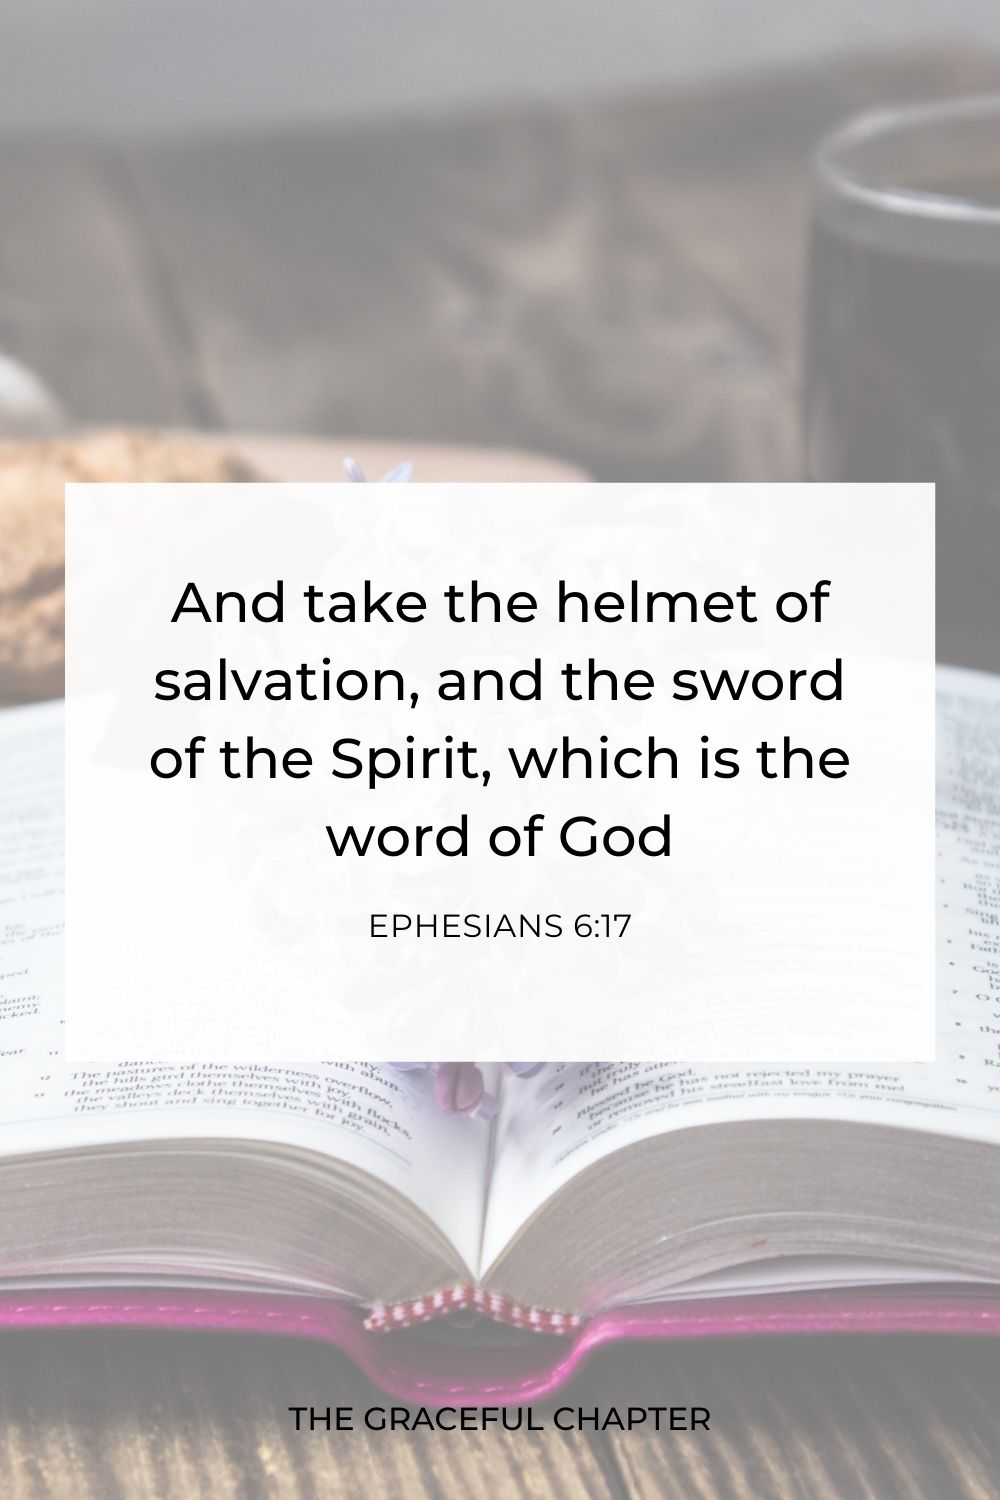 And take the helmet of salvation, and the sword of the Spirit, which is the word of God Ephesians 6:17